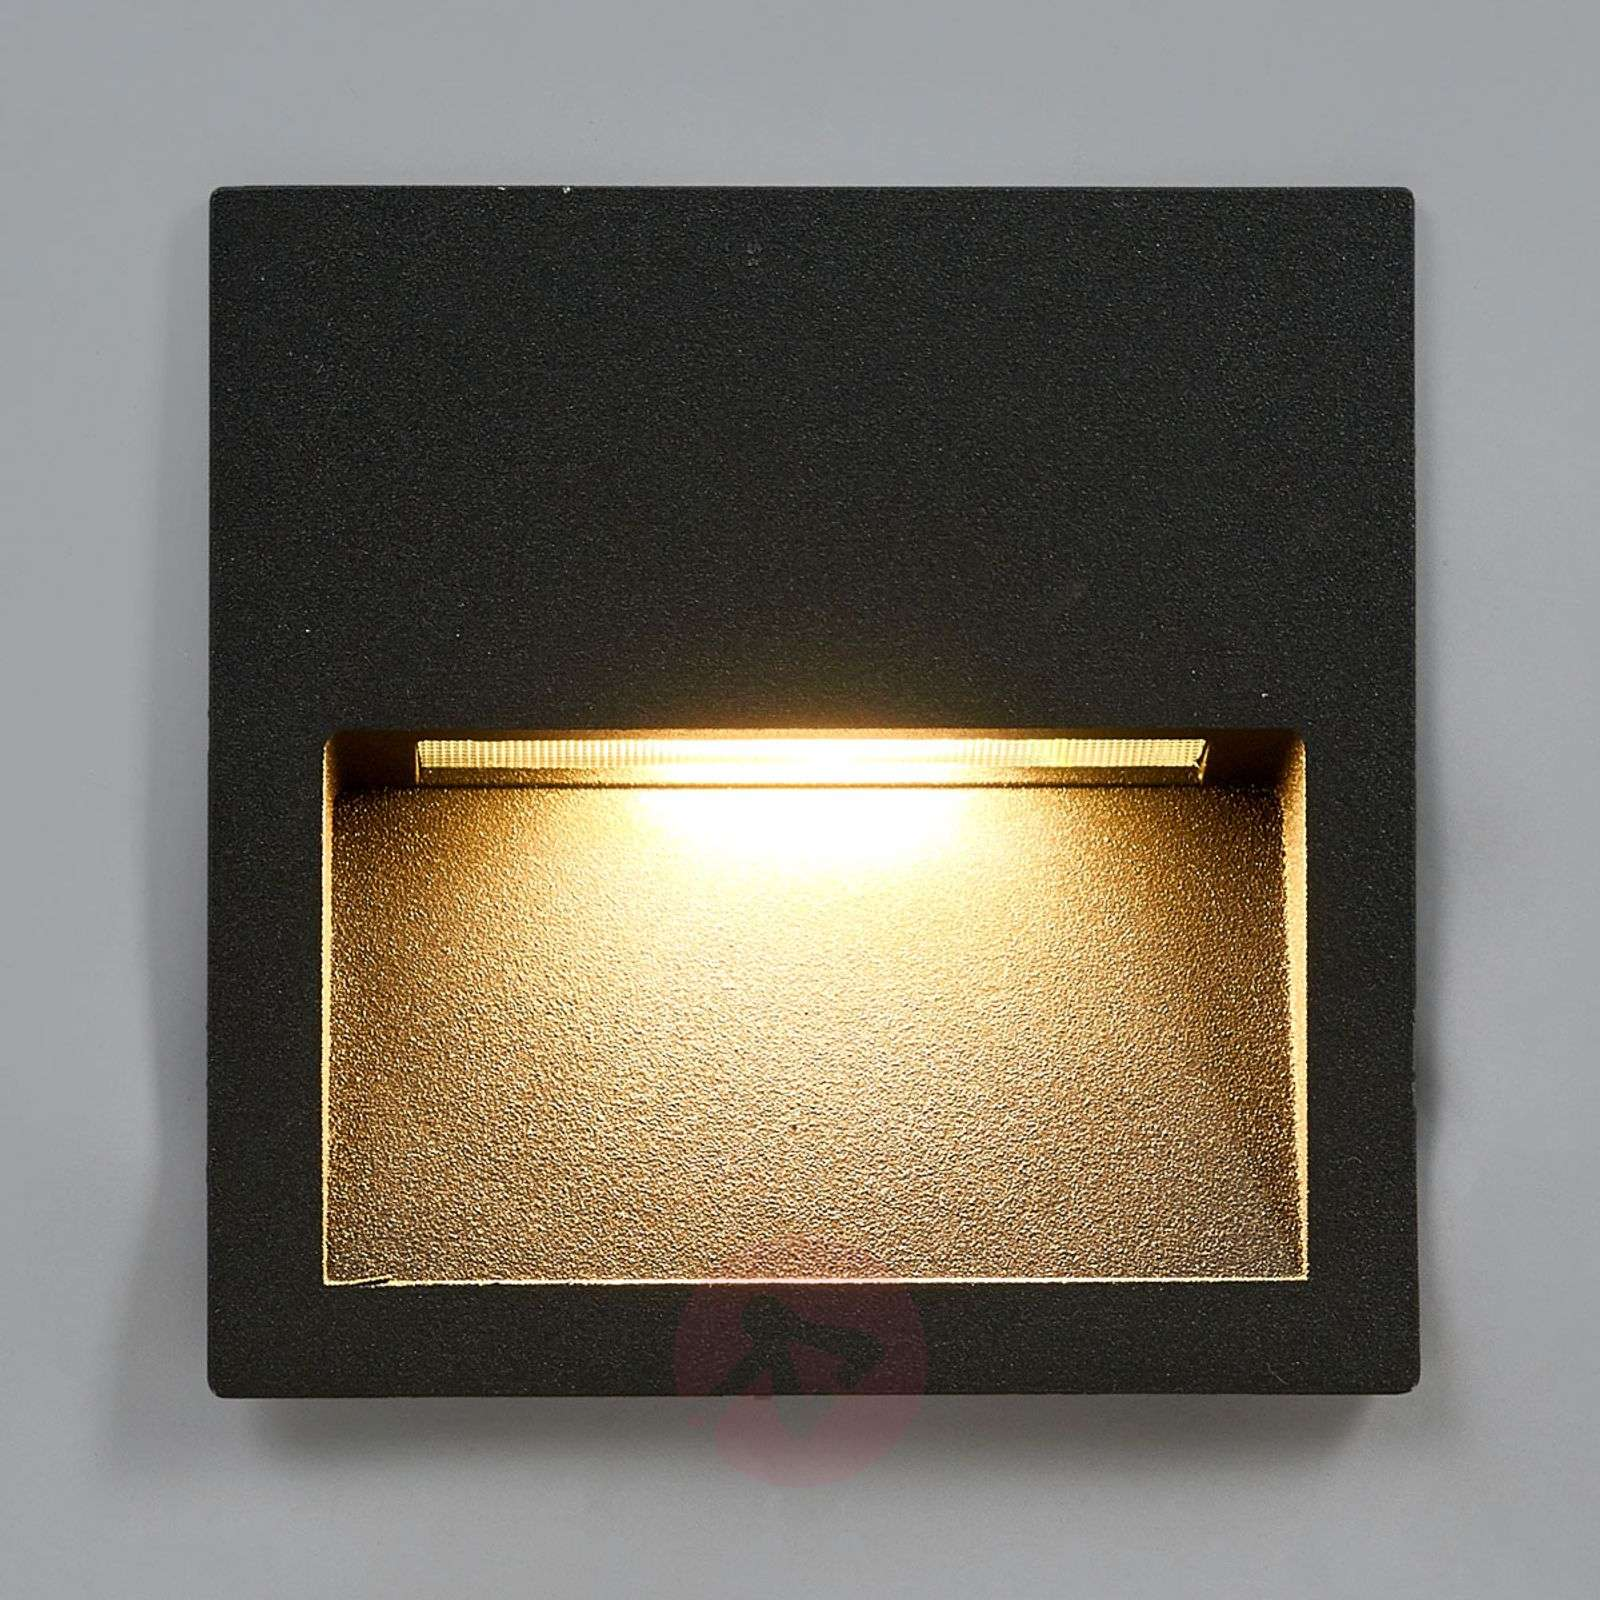 Square Led Recessed Wall Light Loya For Outdoors Lights Ie